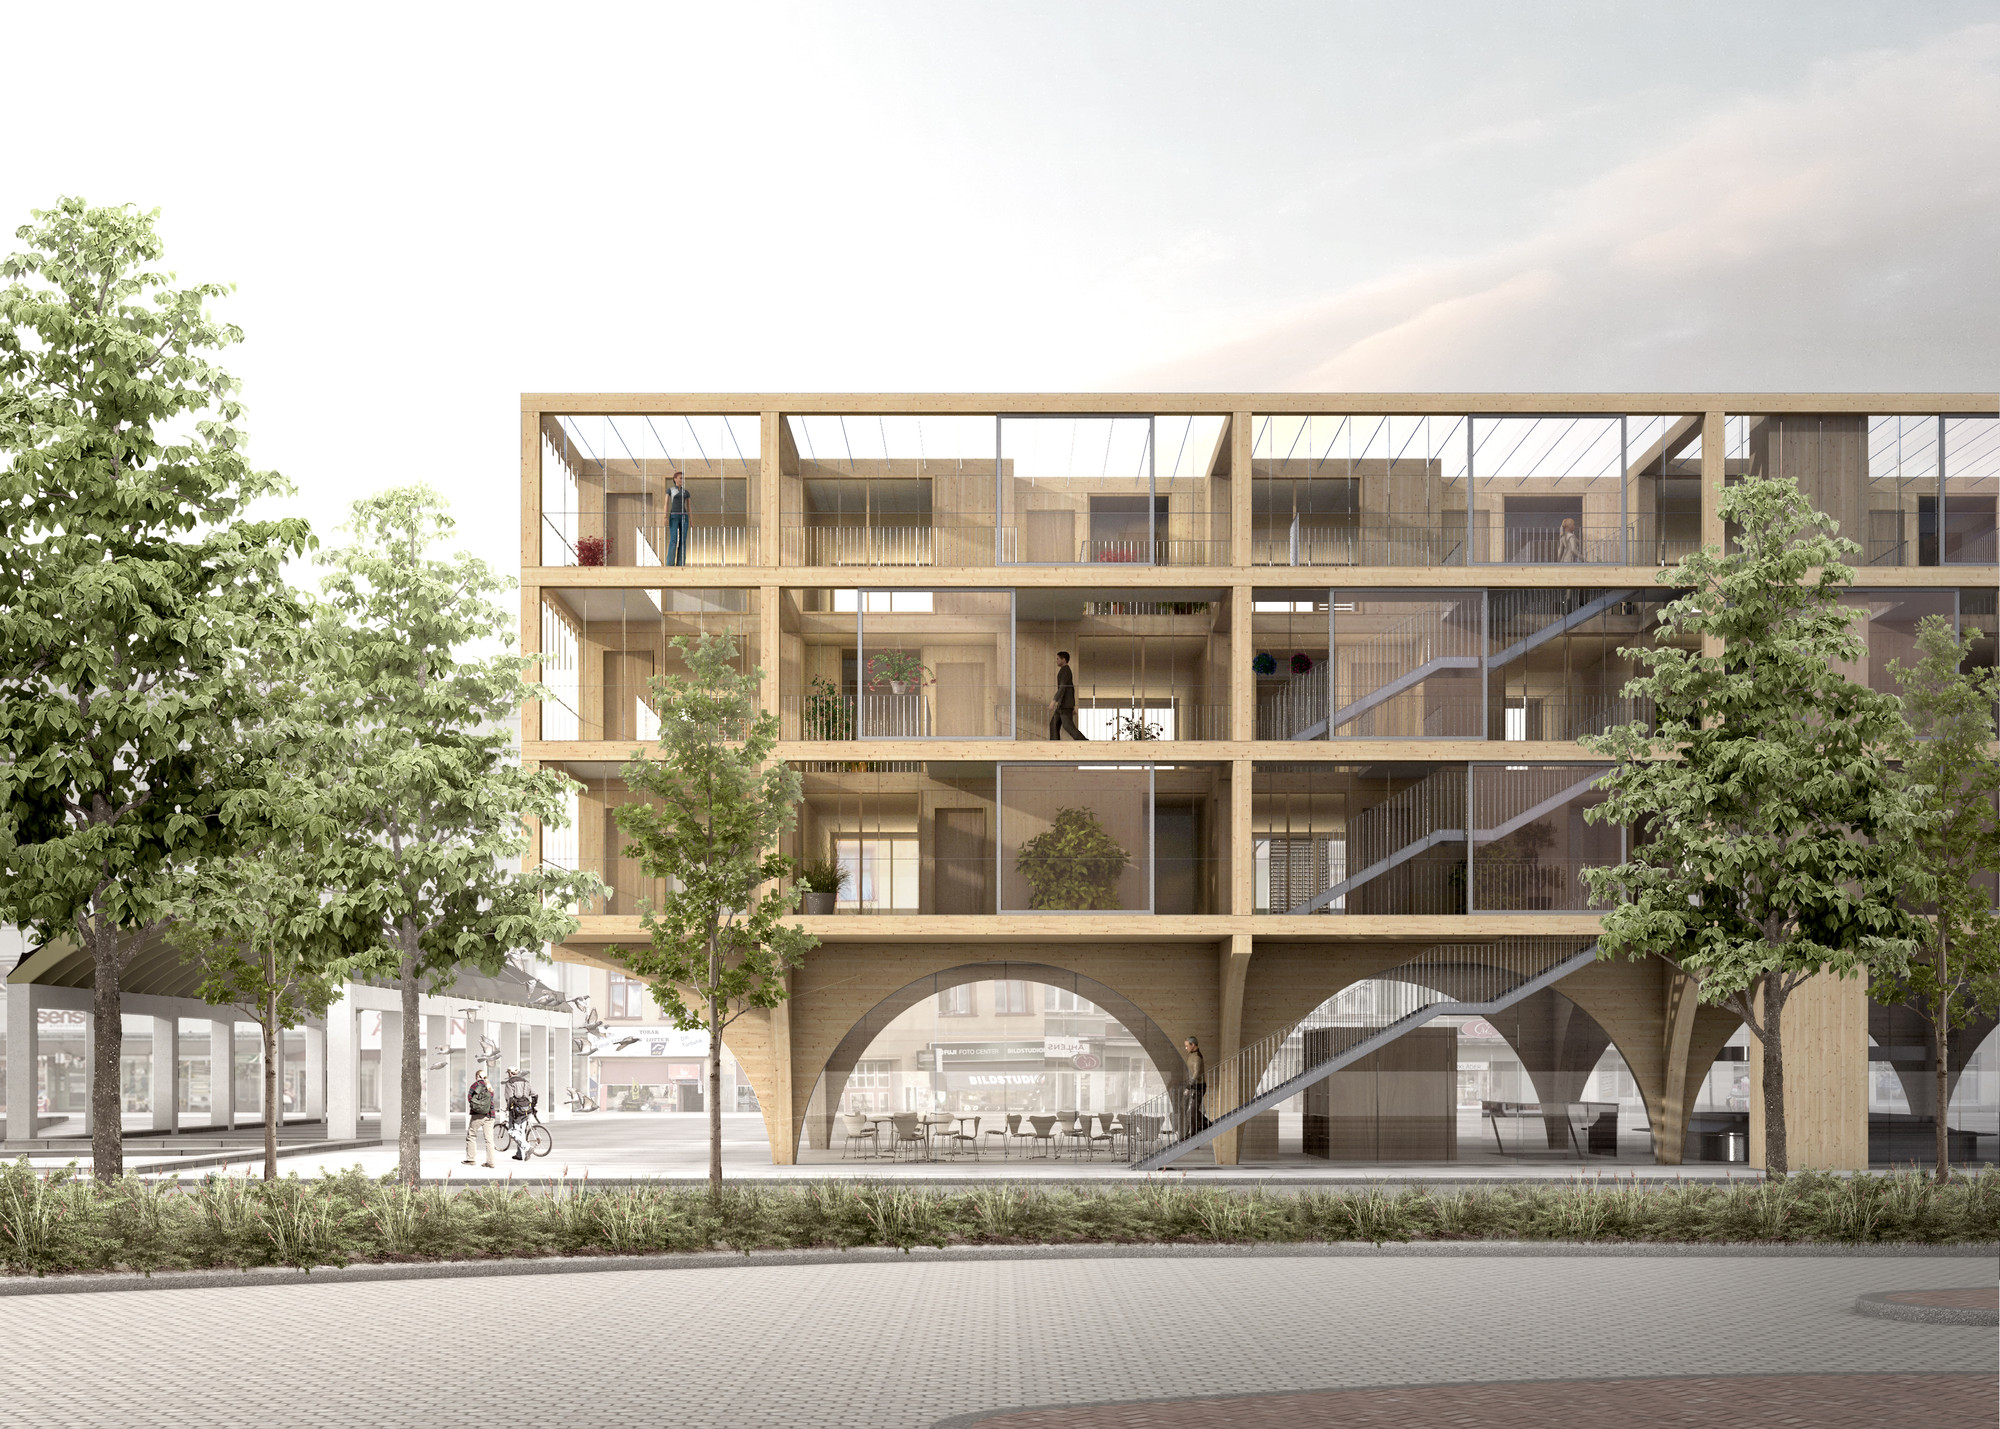 JAJA Wins Second Prize for Swedish Housing and Market Hall Hybrid, Mainstreet . Image © JAJA Architects